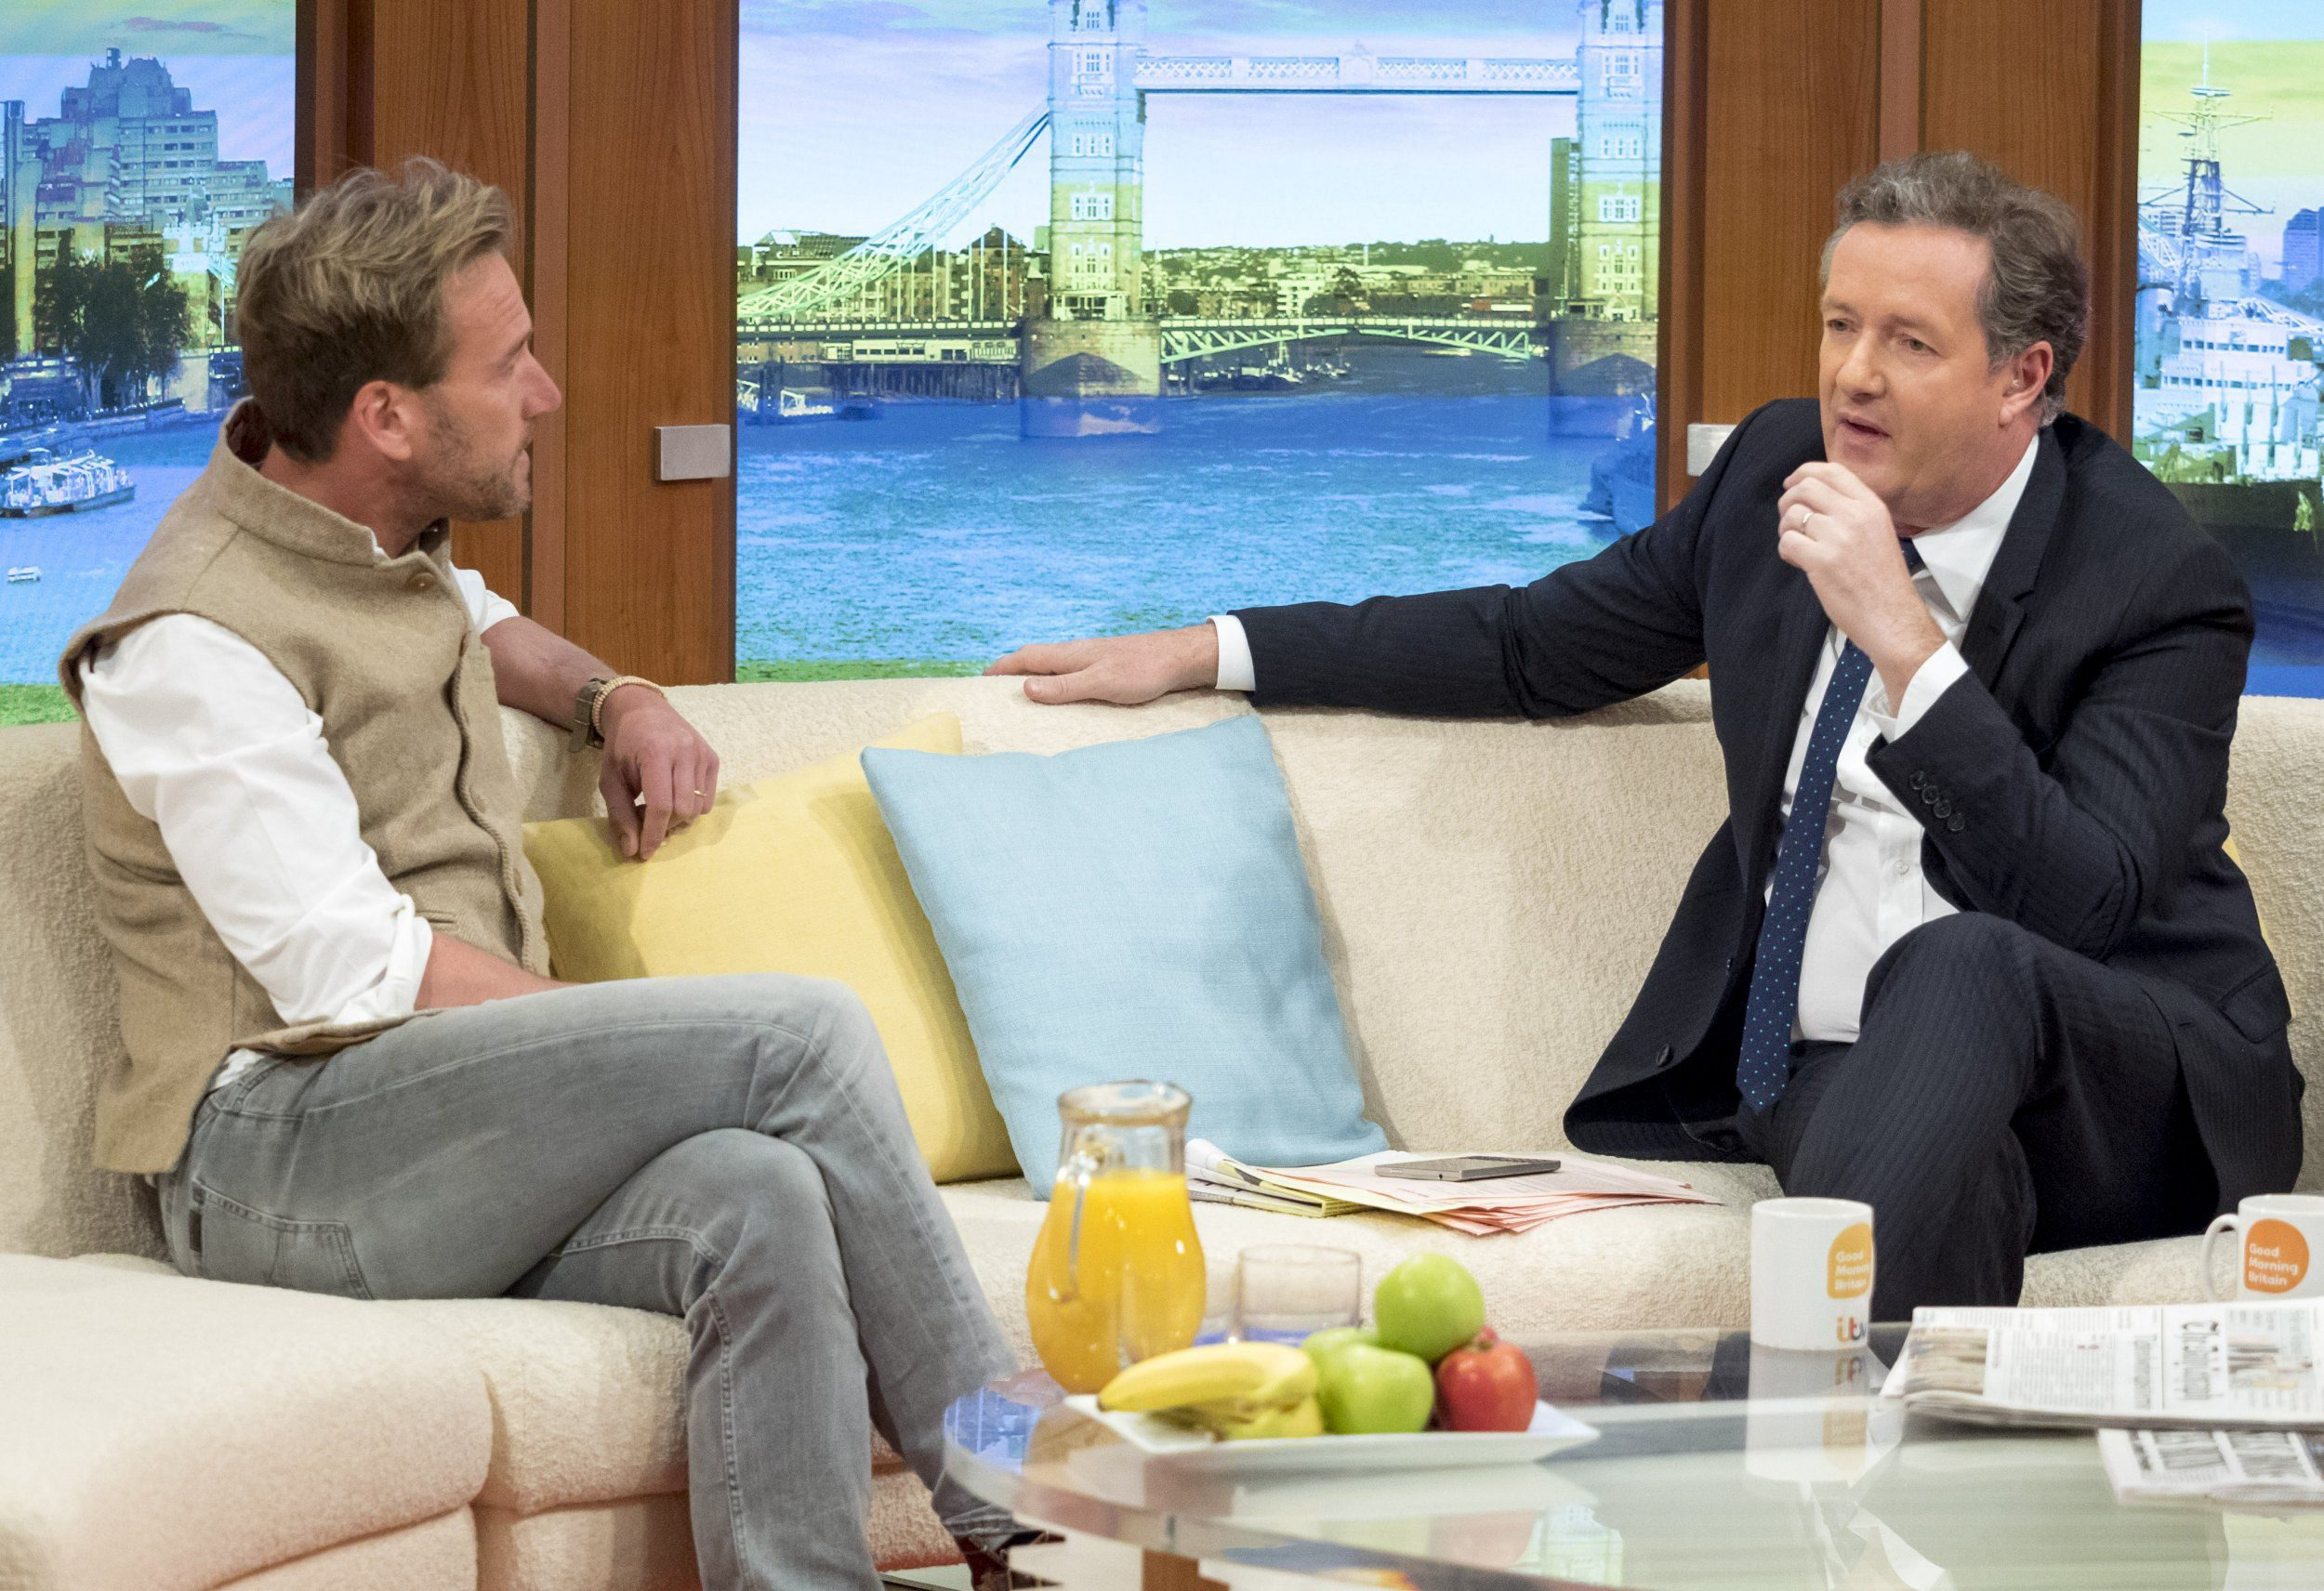 Good Morning Britain viewers back Piers Morgan as he confronts Ben Fogle in heated trophy hunting debate